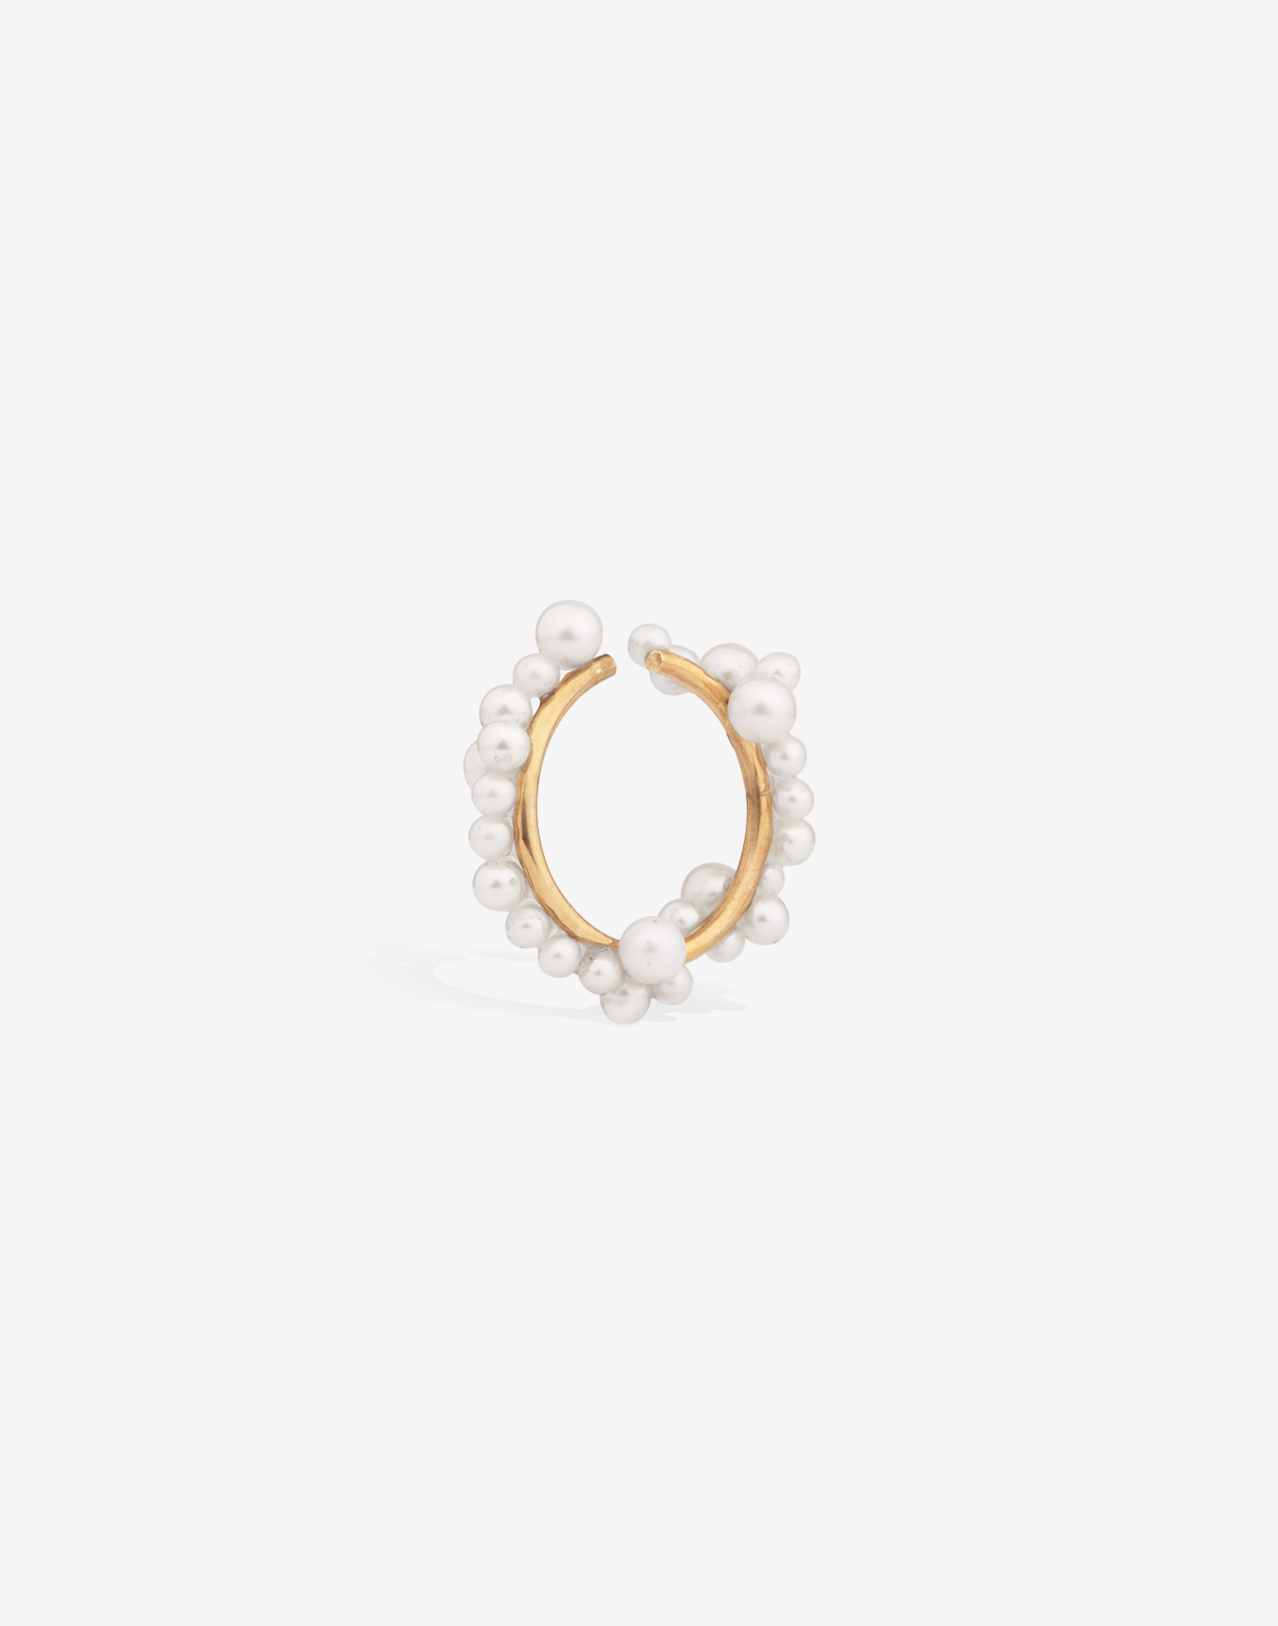 Completedworks-Tied-18ct-Yellow-Gold-plating-on-Silver-Ear Cuff-A1019-1.jpg